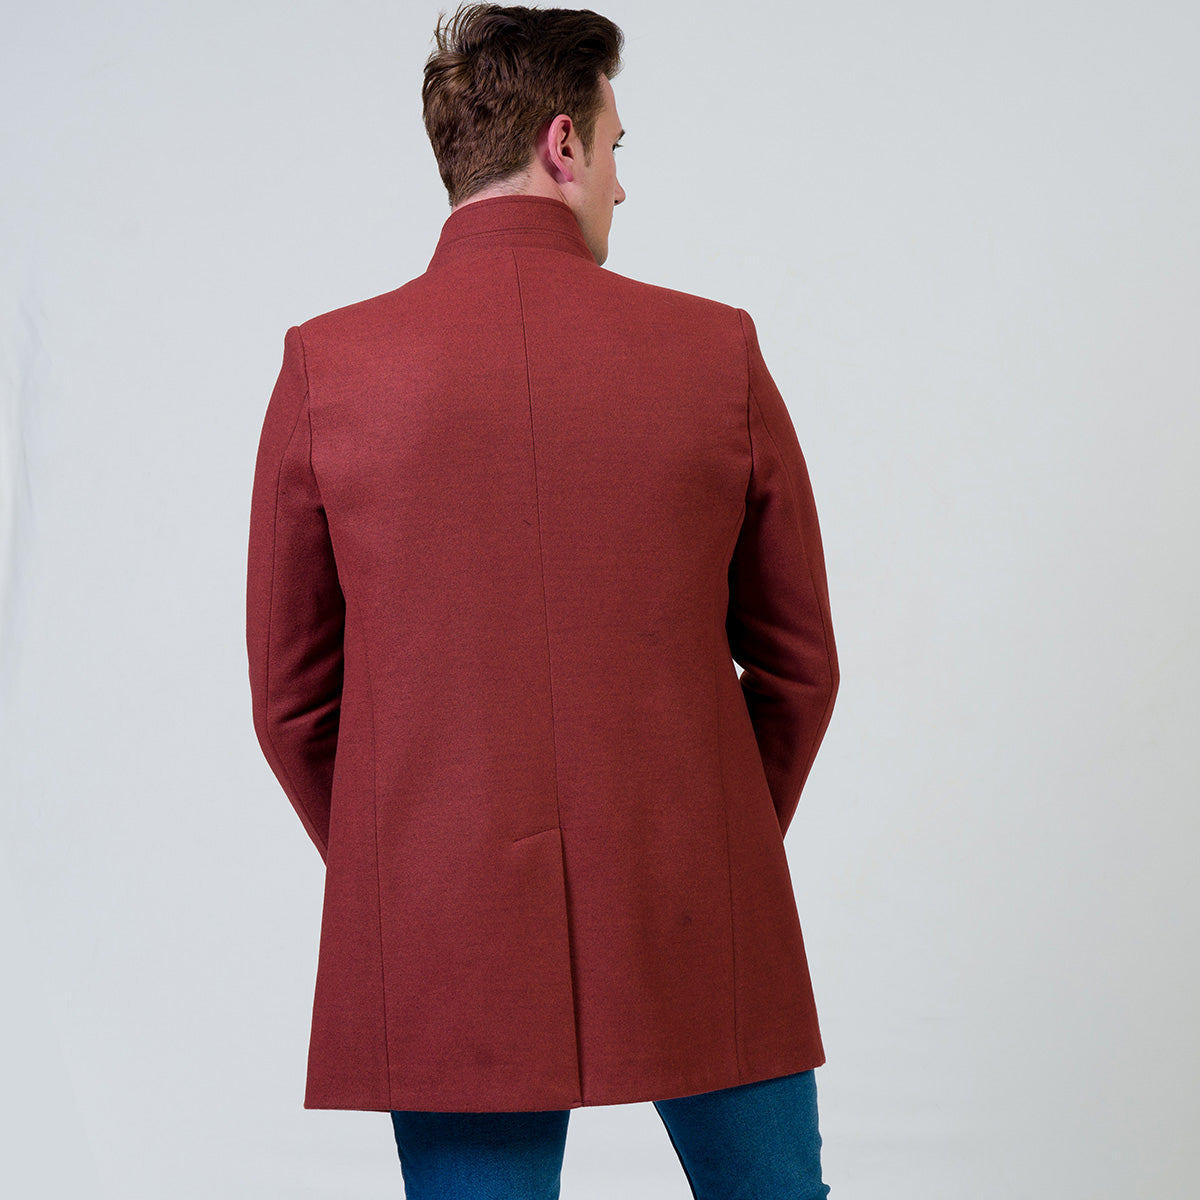 Men's European Maroon Wool Coat Jacket Tailor fit Fine Luxury Quality Work and Casual